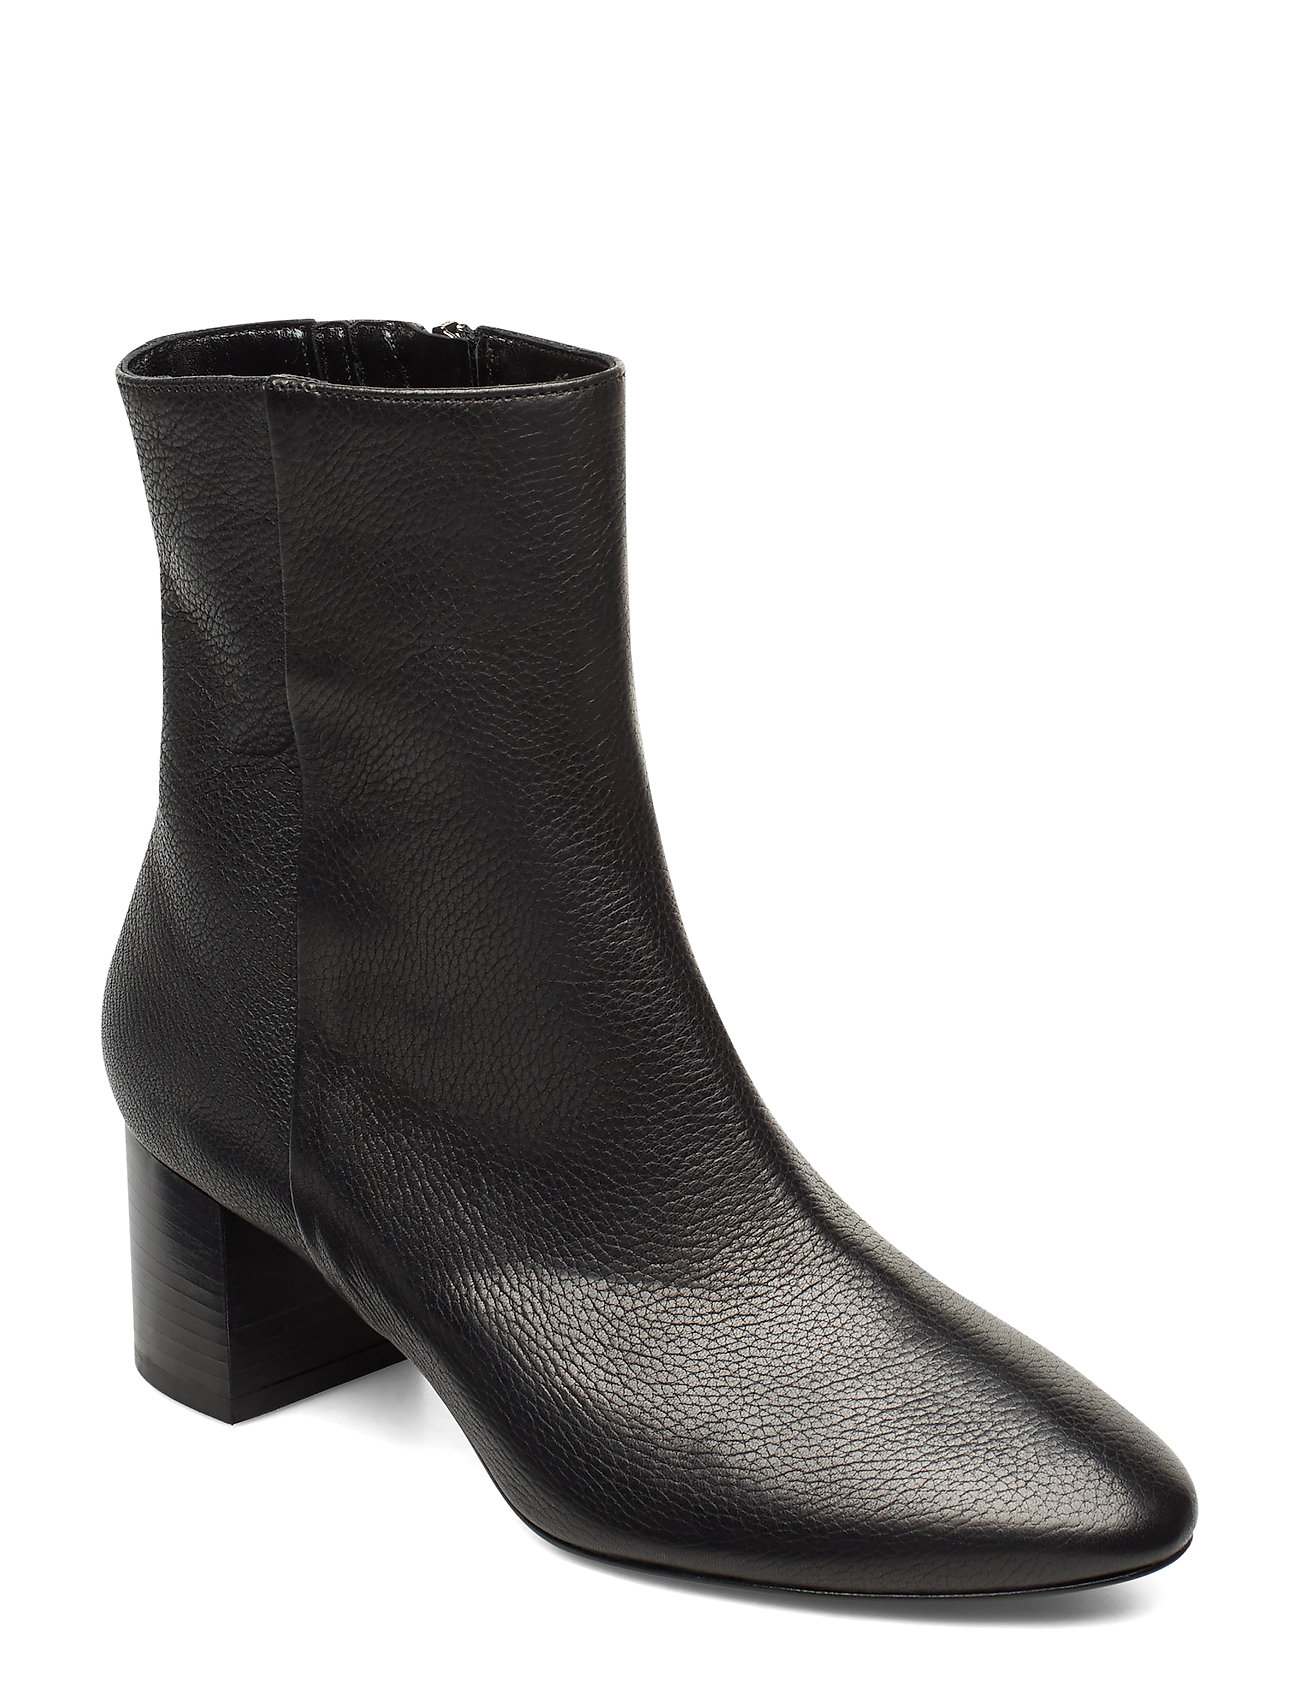 Image of Plan Low Rounded Bootie Shoes Boots Ankle Boots Ankle Boot - Heel Sort Apair (3406234687)